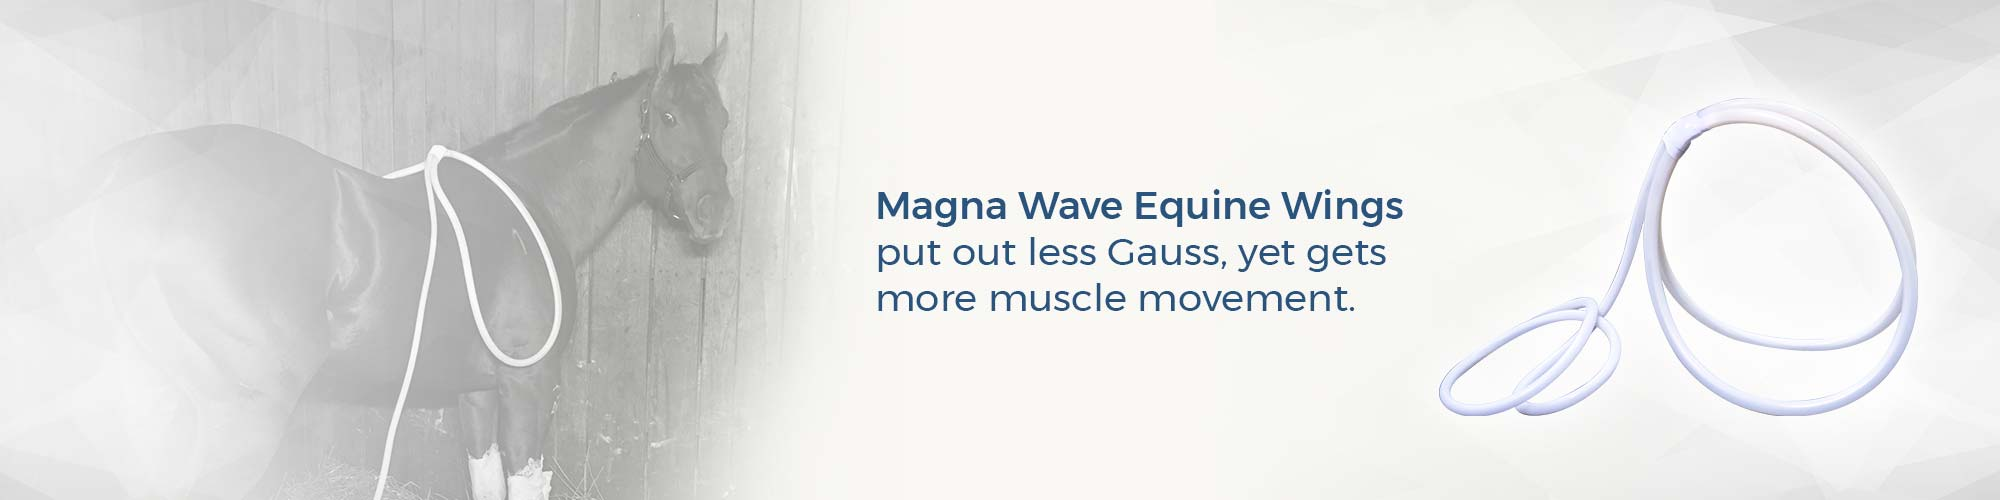 Magna Wave Equine Wings put out less Gauss, yet gets more muscle movement.